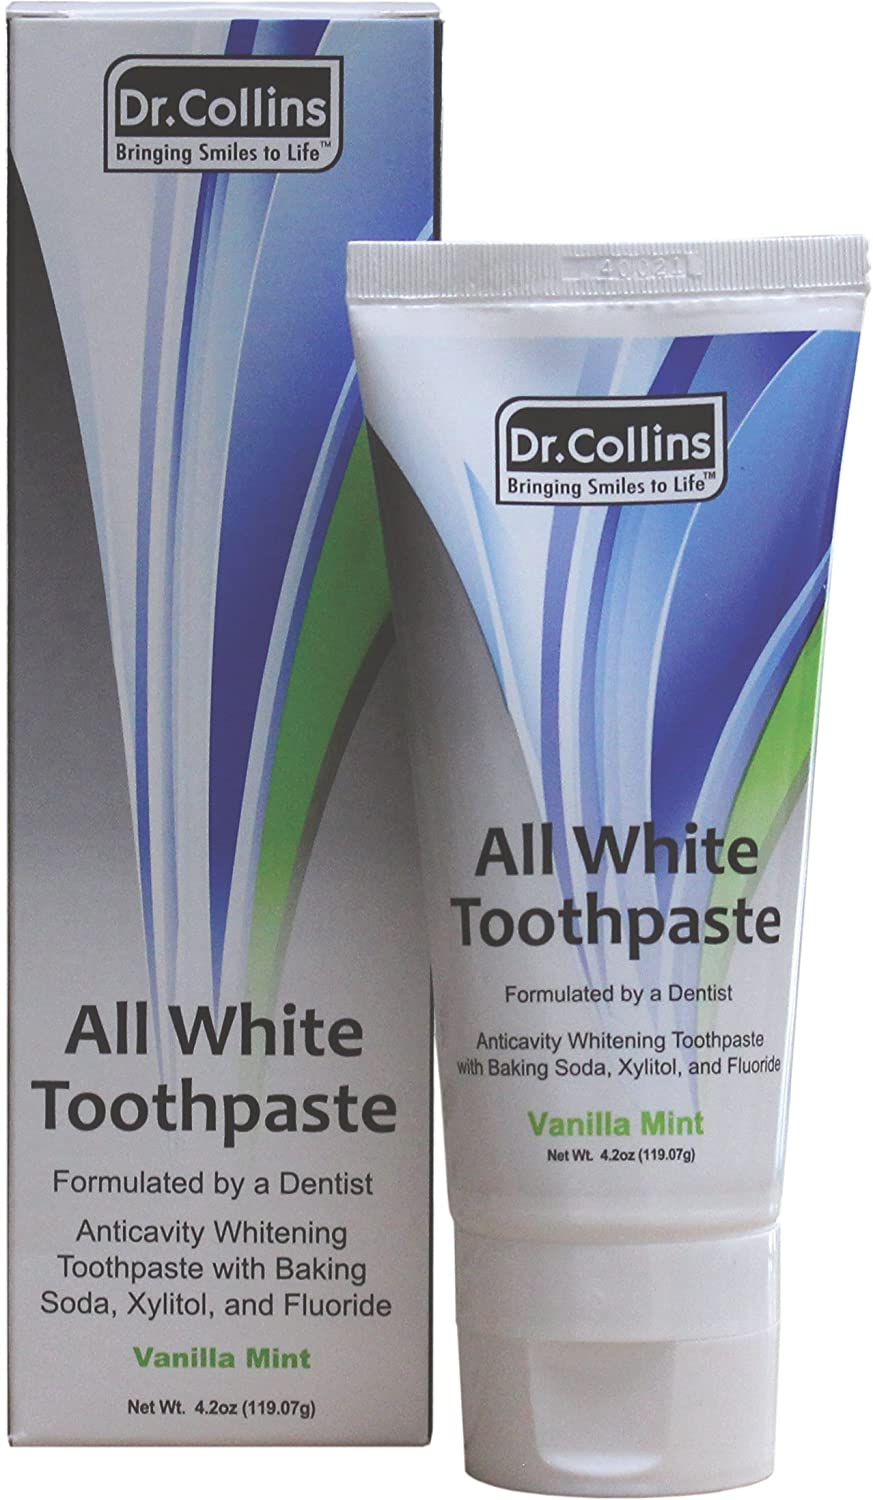 Dr. Collins All White Toothpaste, Vanilla Mint, 4.2 ounce